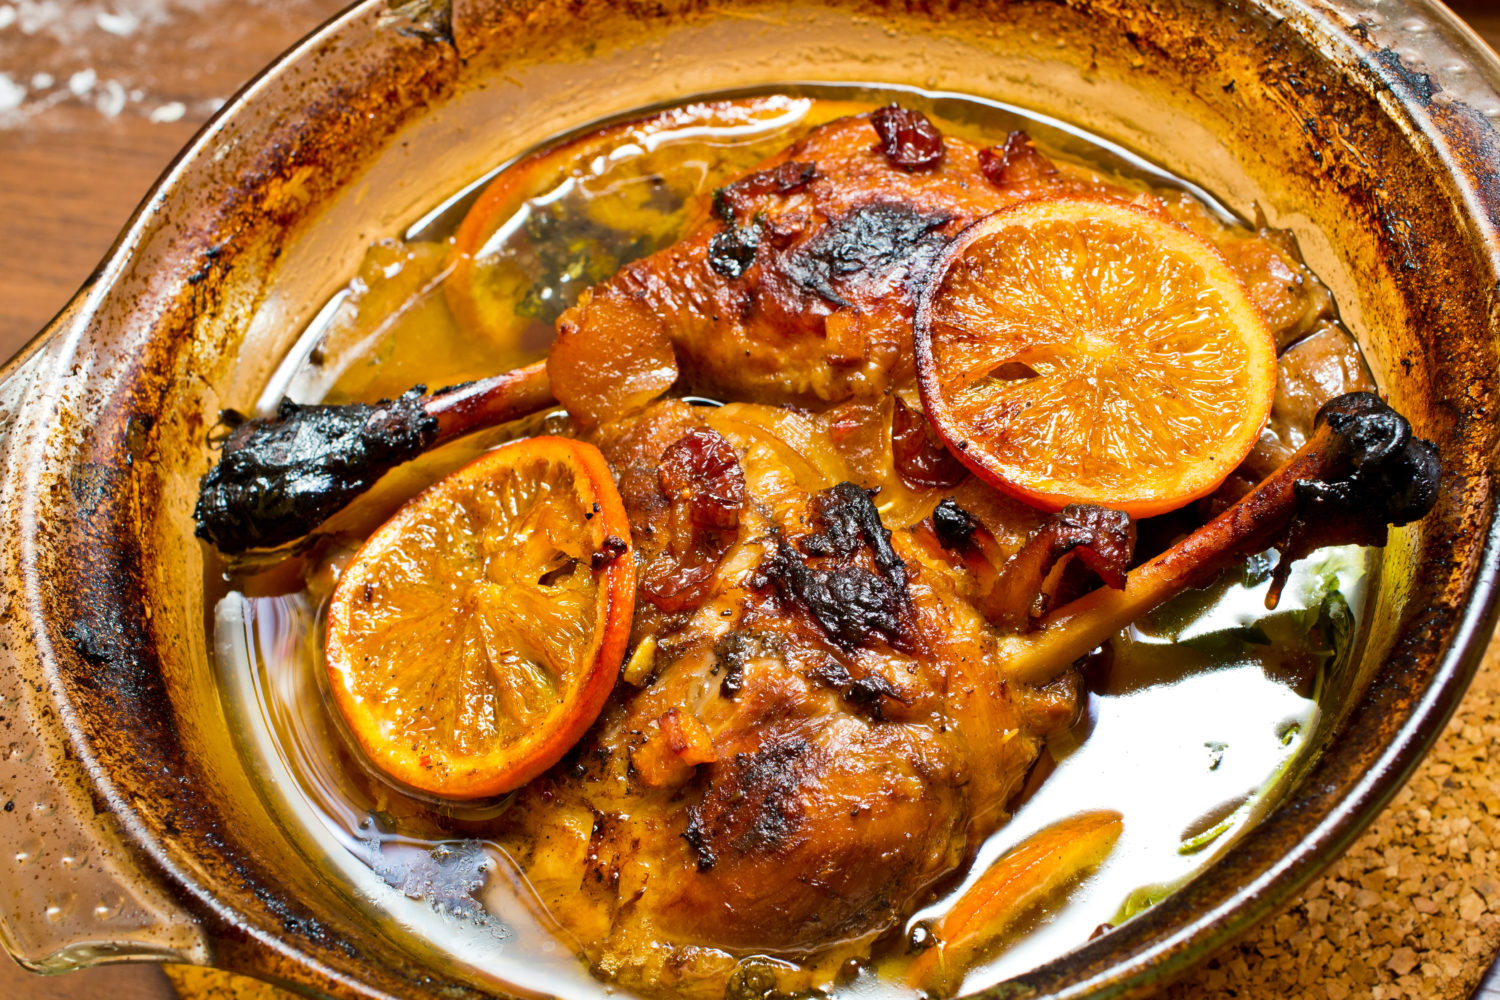 Duck Leg in Orange Sauce